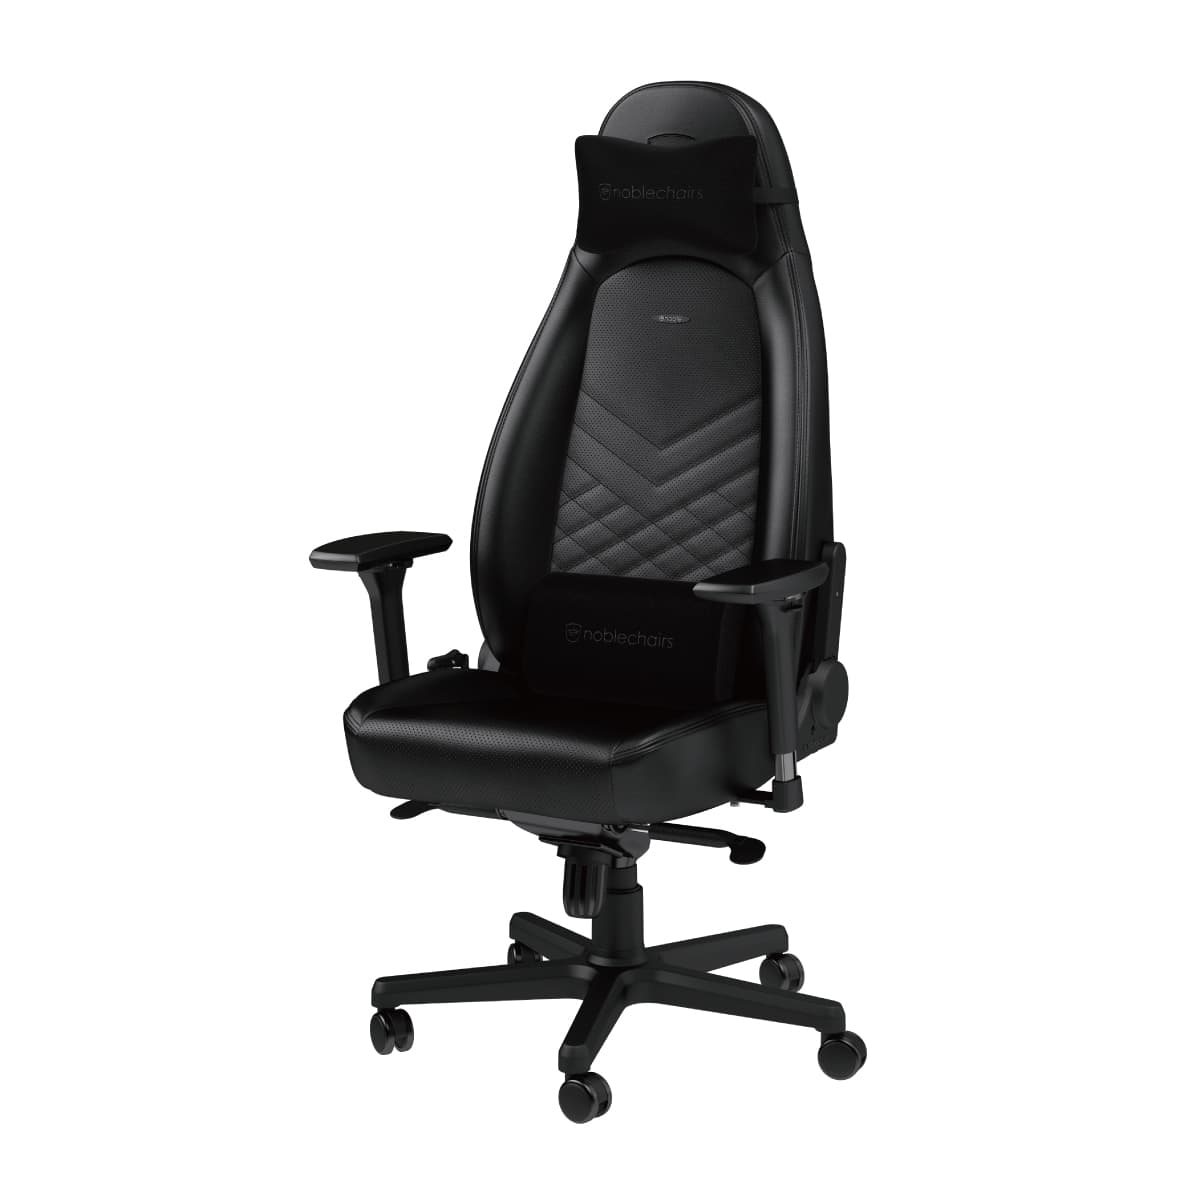 noblechairs-cushionset-web-07